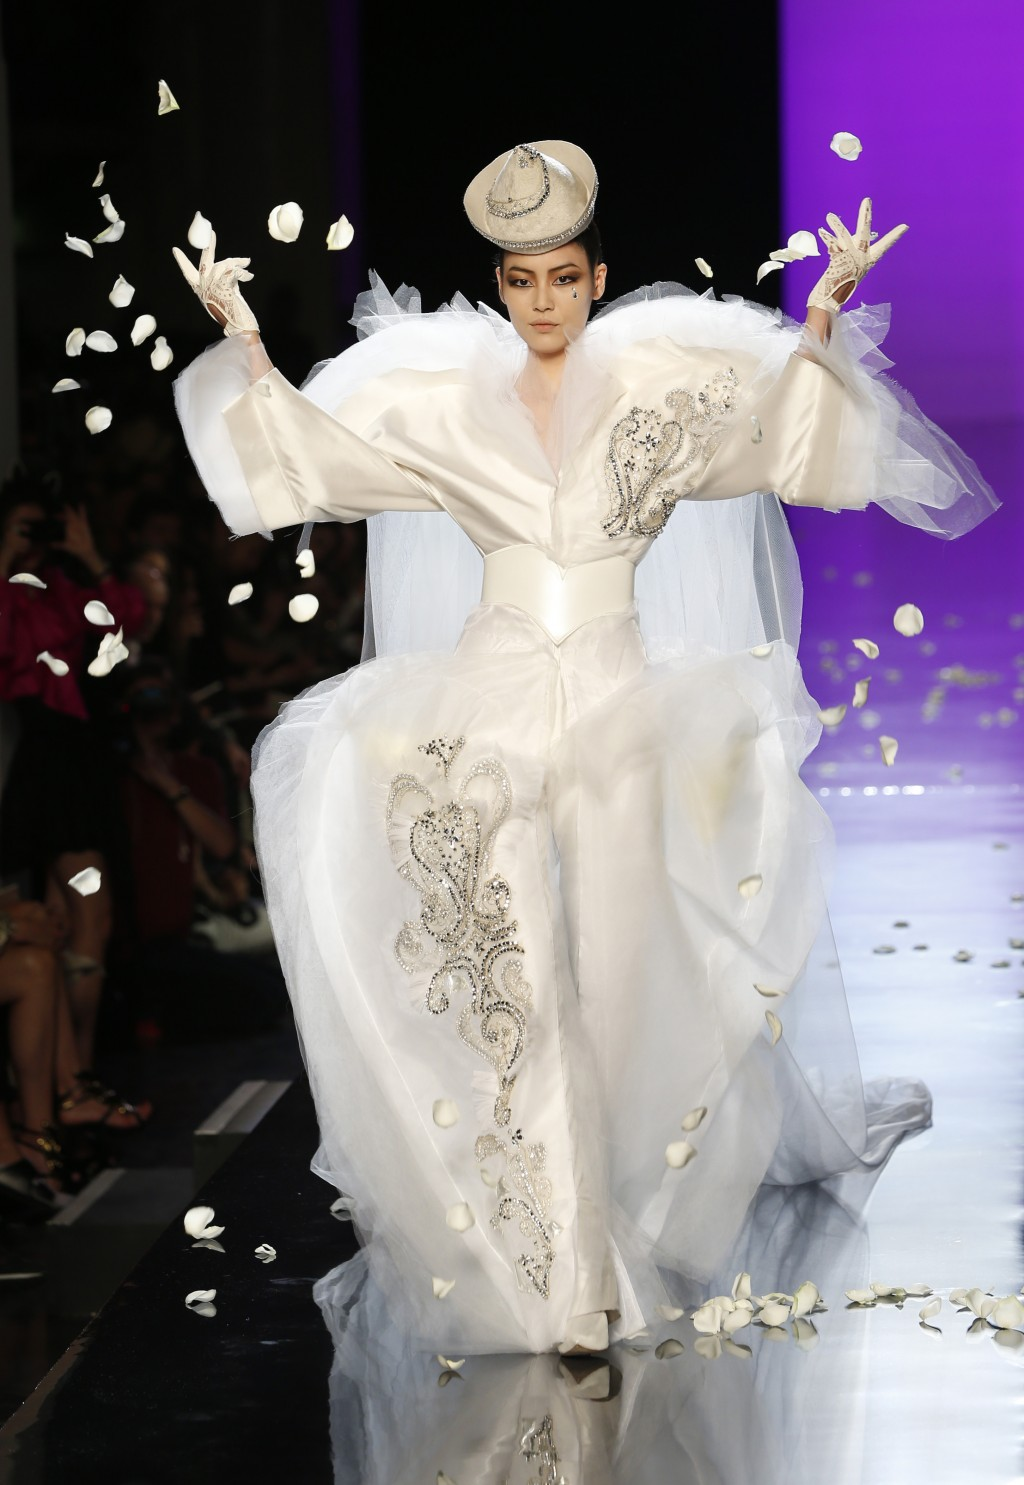 FILE - In this Wednesday, July 3, 2013 file photo, a model wears the wedding gown for Jean-Paul Gaultier's Haute Couture Fall-Winter 2013-2014 collect...